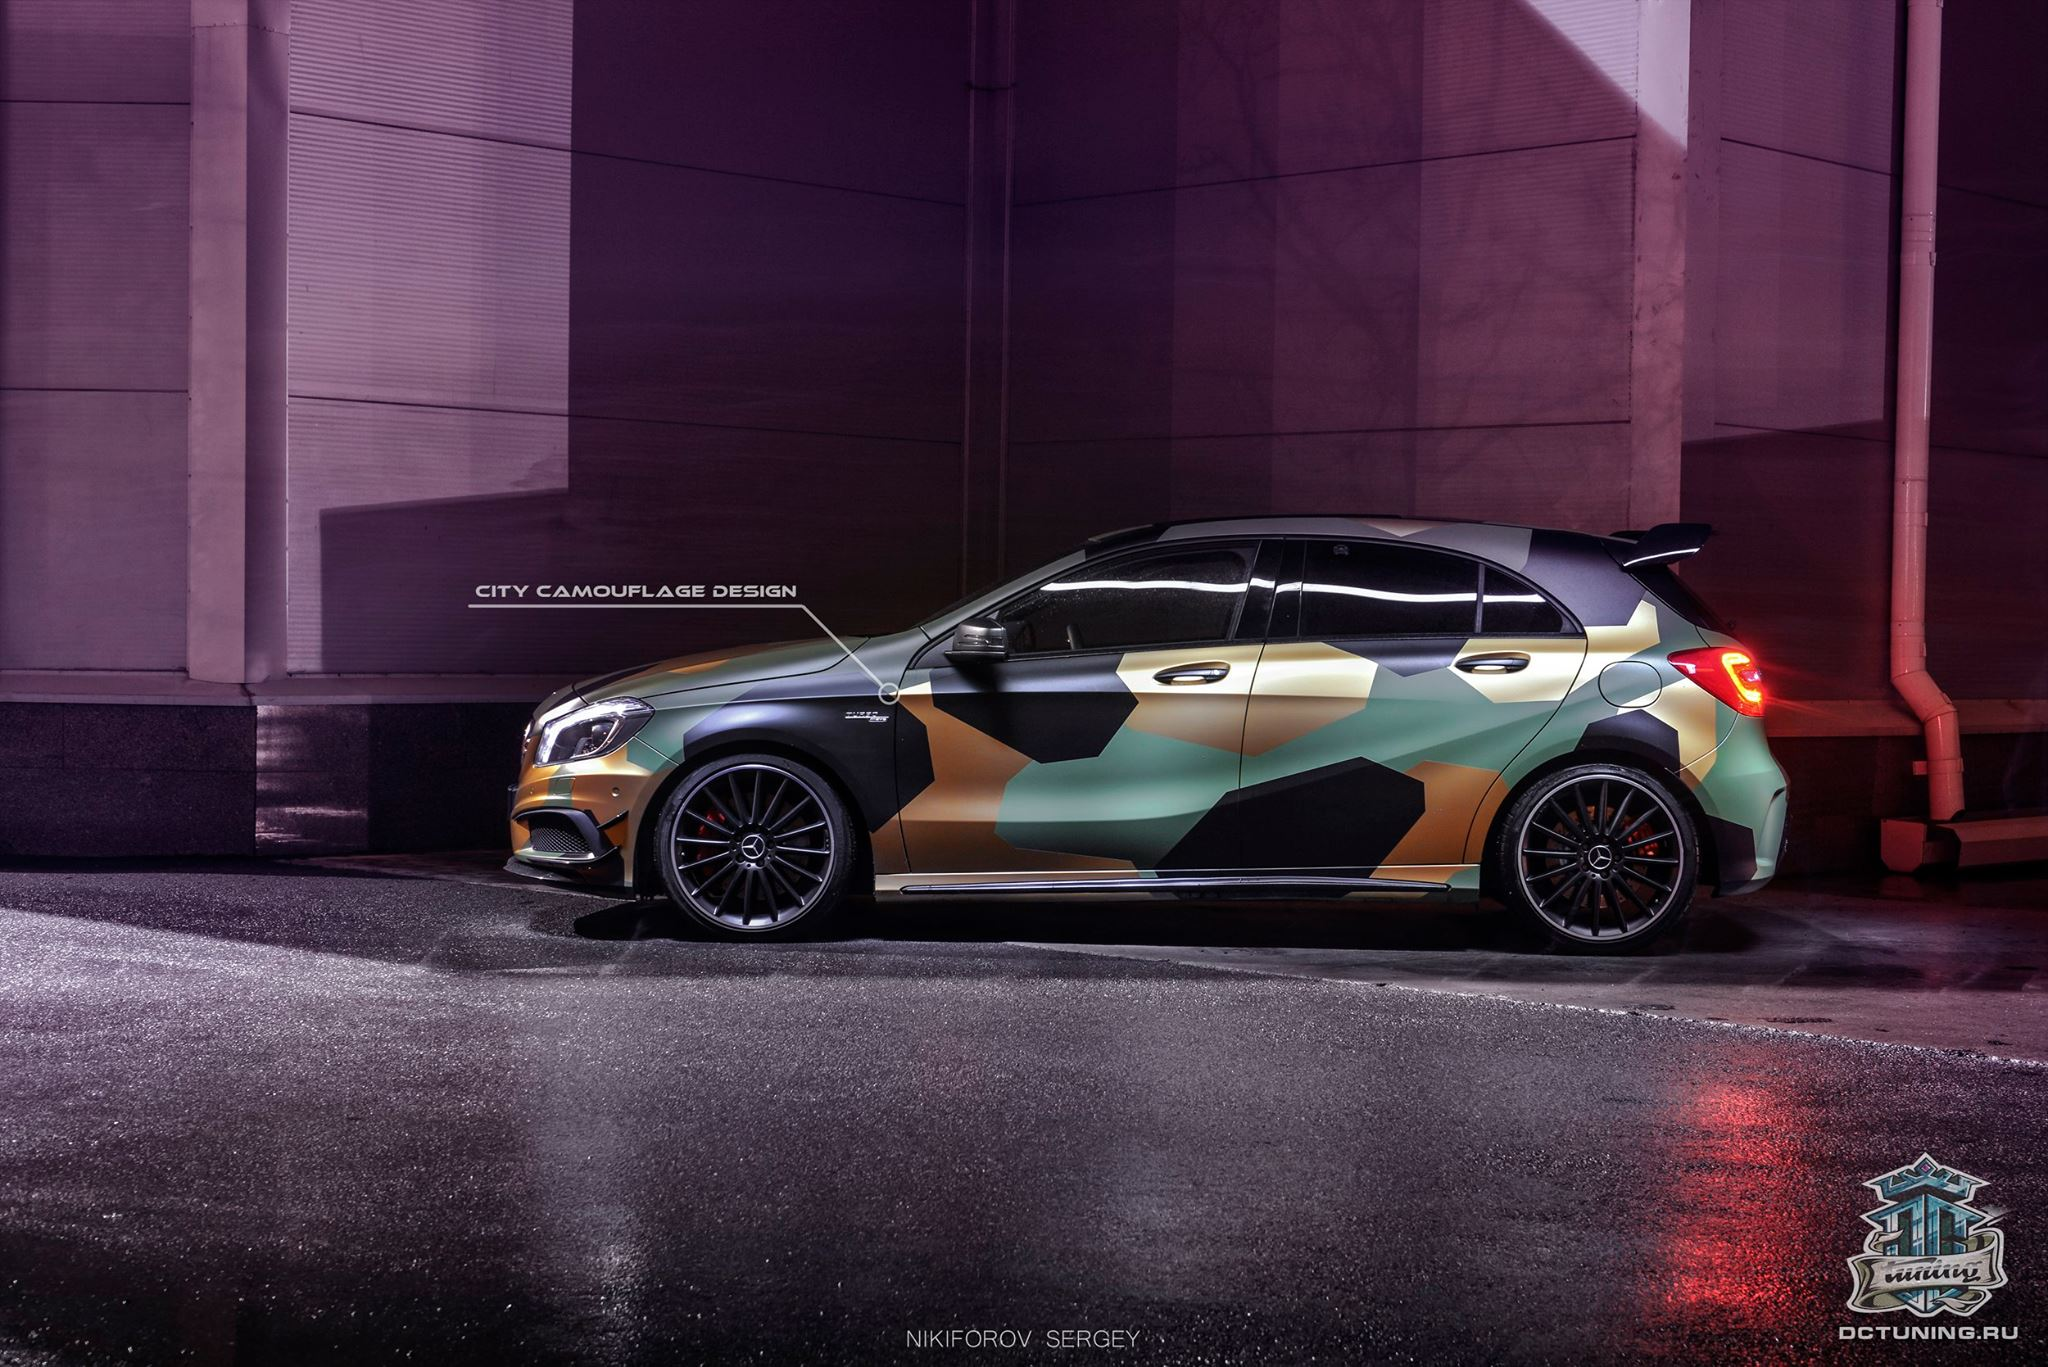 turbo toy car with A45 Amg Gets City Camouflage Wrap From Dc Tuning Russia 88811 on Showthread likewise 201639694822 together with My 2008 Aveo Hatch Wheels Tires Lowered 9288 as well A45 Amg Gets City Camouflage Wrap From Dc Tuning Russia 88811 furthermore 781131.